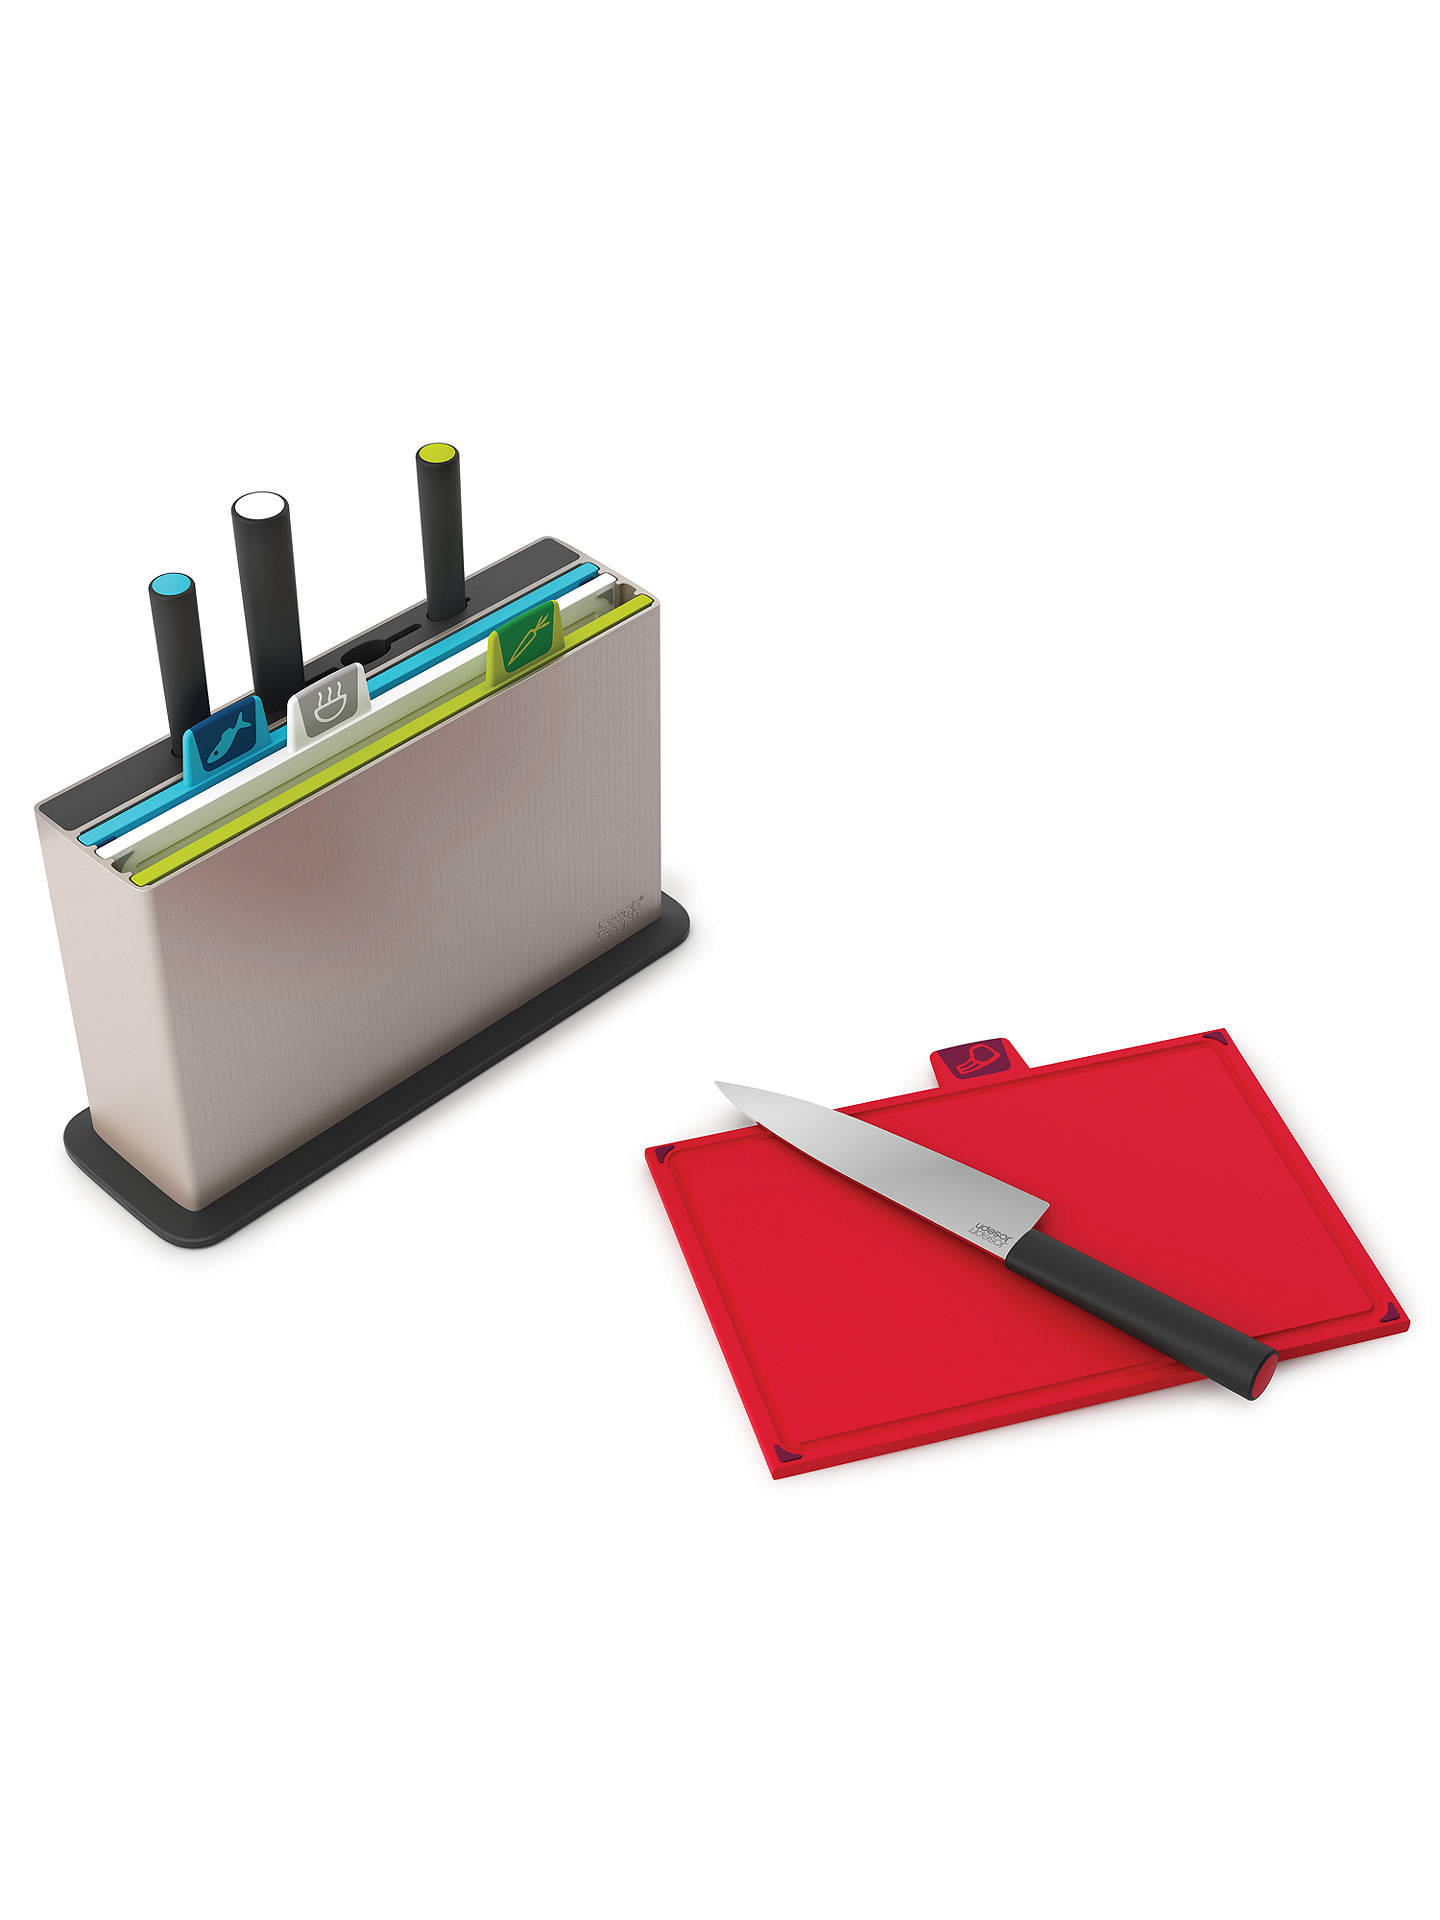 Buy Joseph Joseph Index 4 Chopping Boards / Filled Knife Block, 4 Piece Online at johnlewis.com